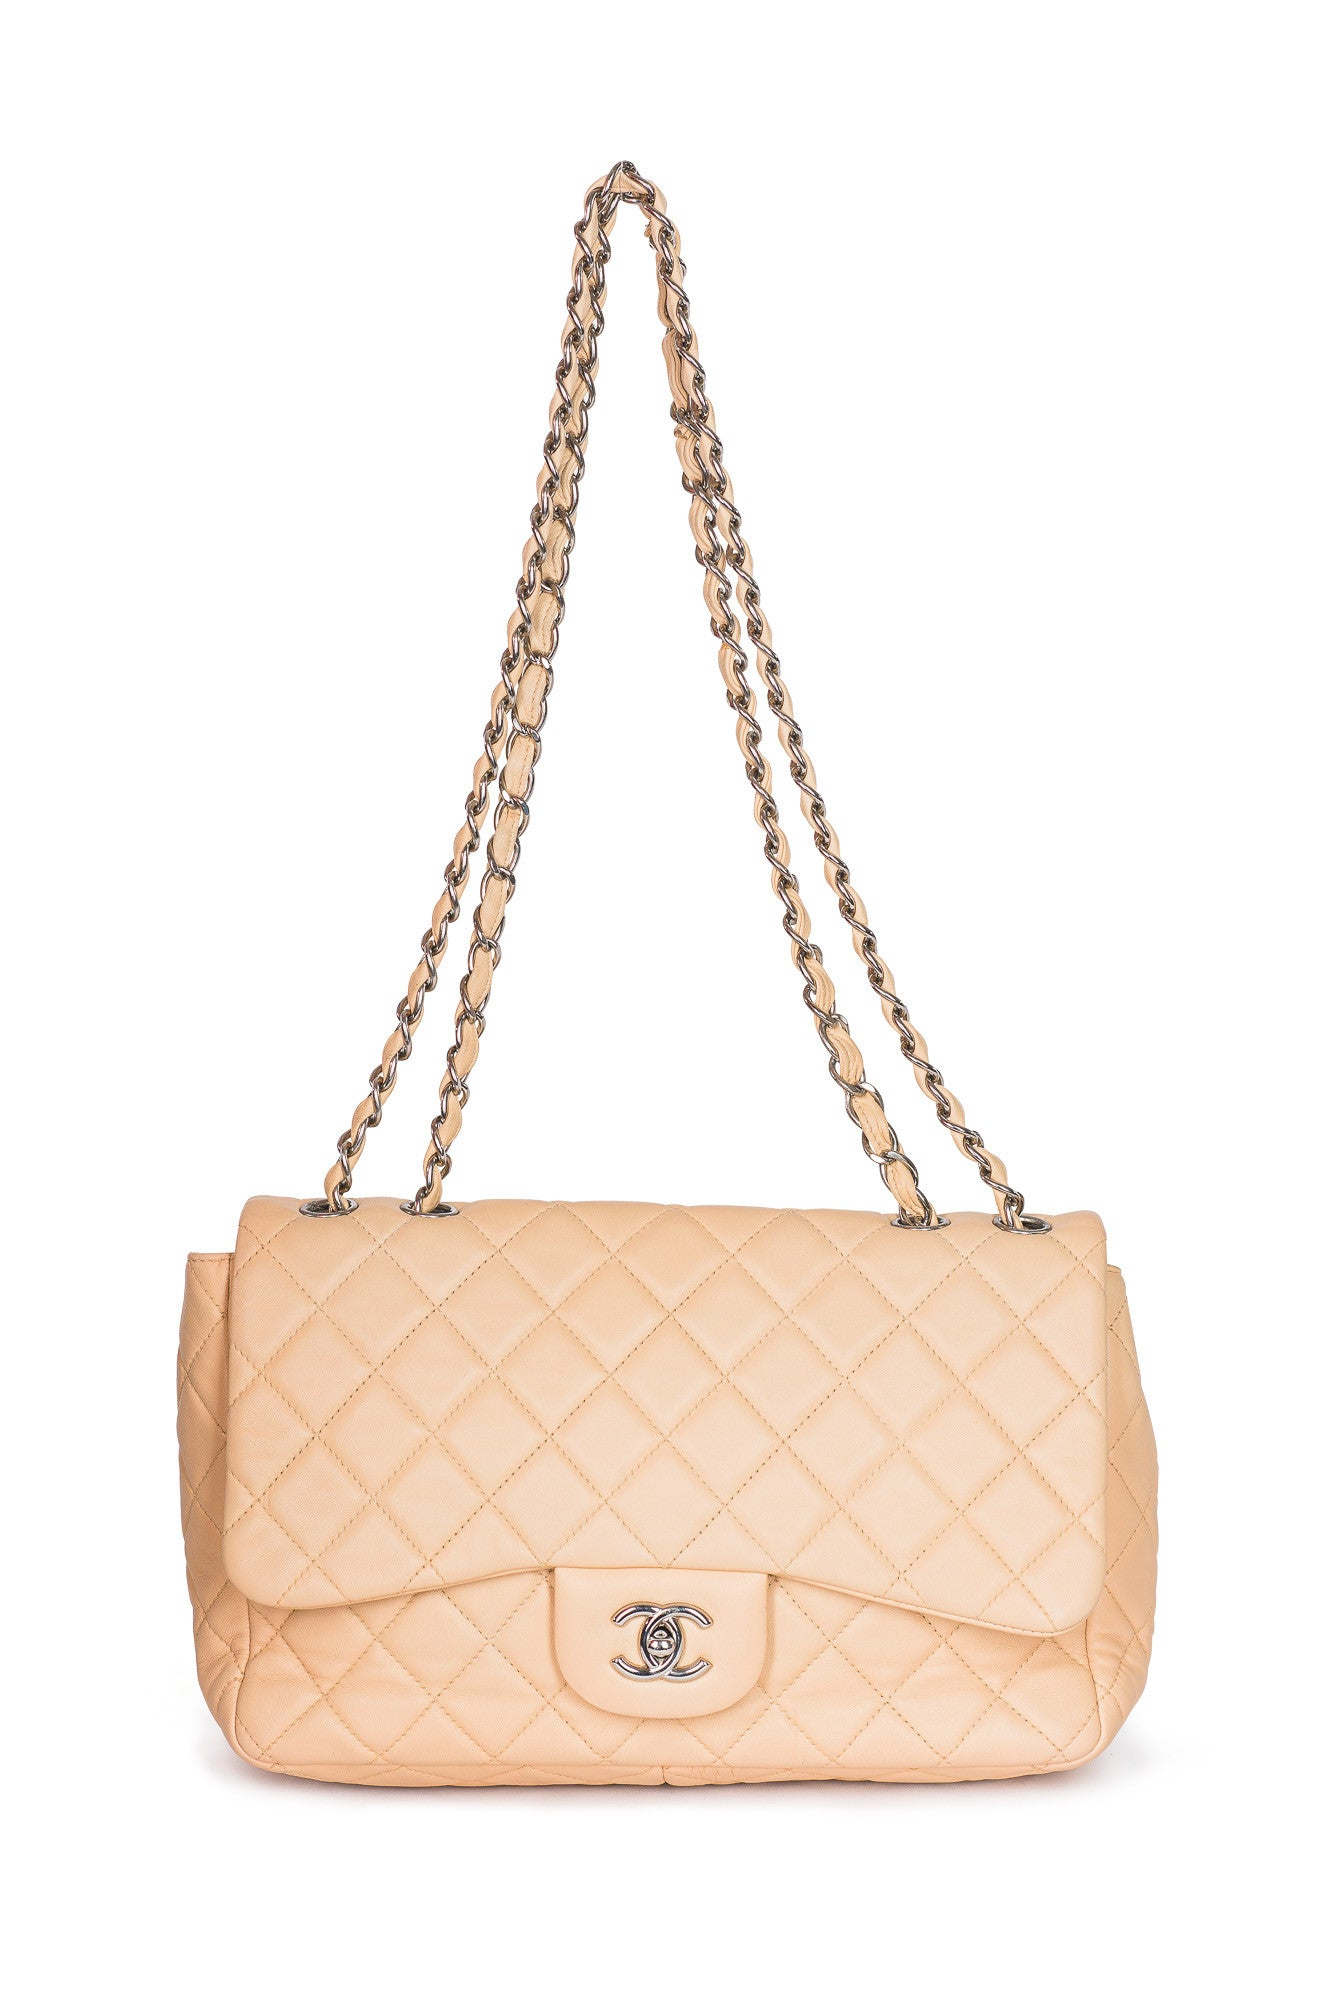 CHANEL Quilted Lambskin Large Single Flap Bag